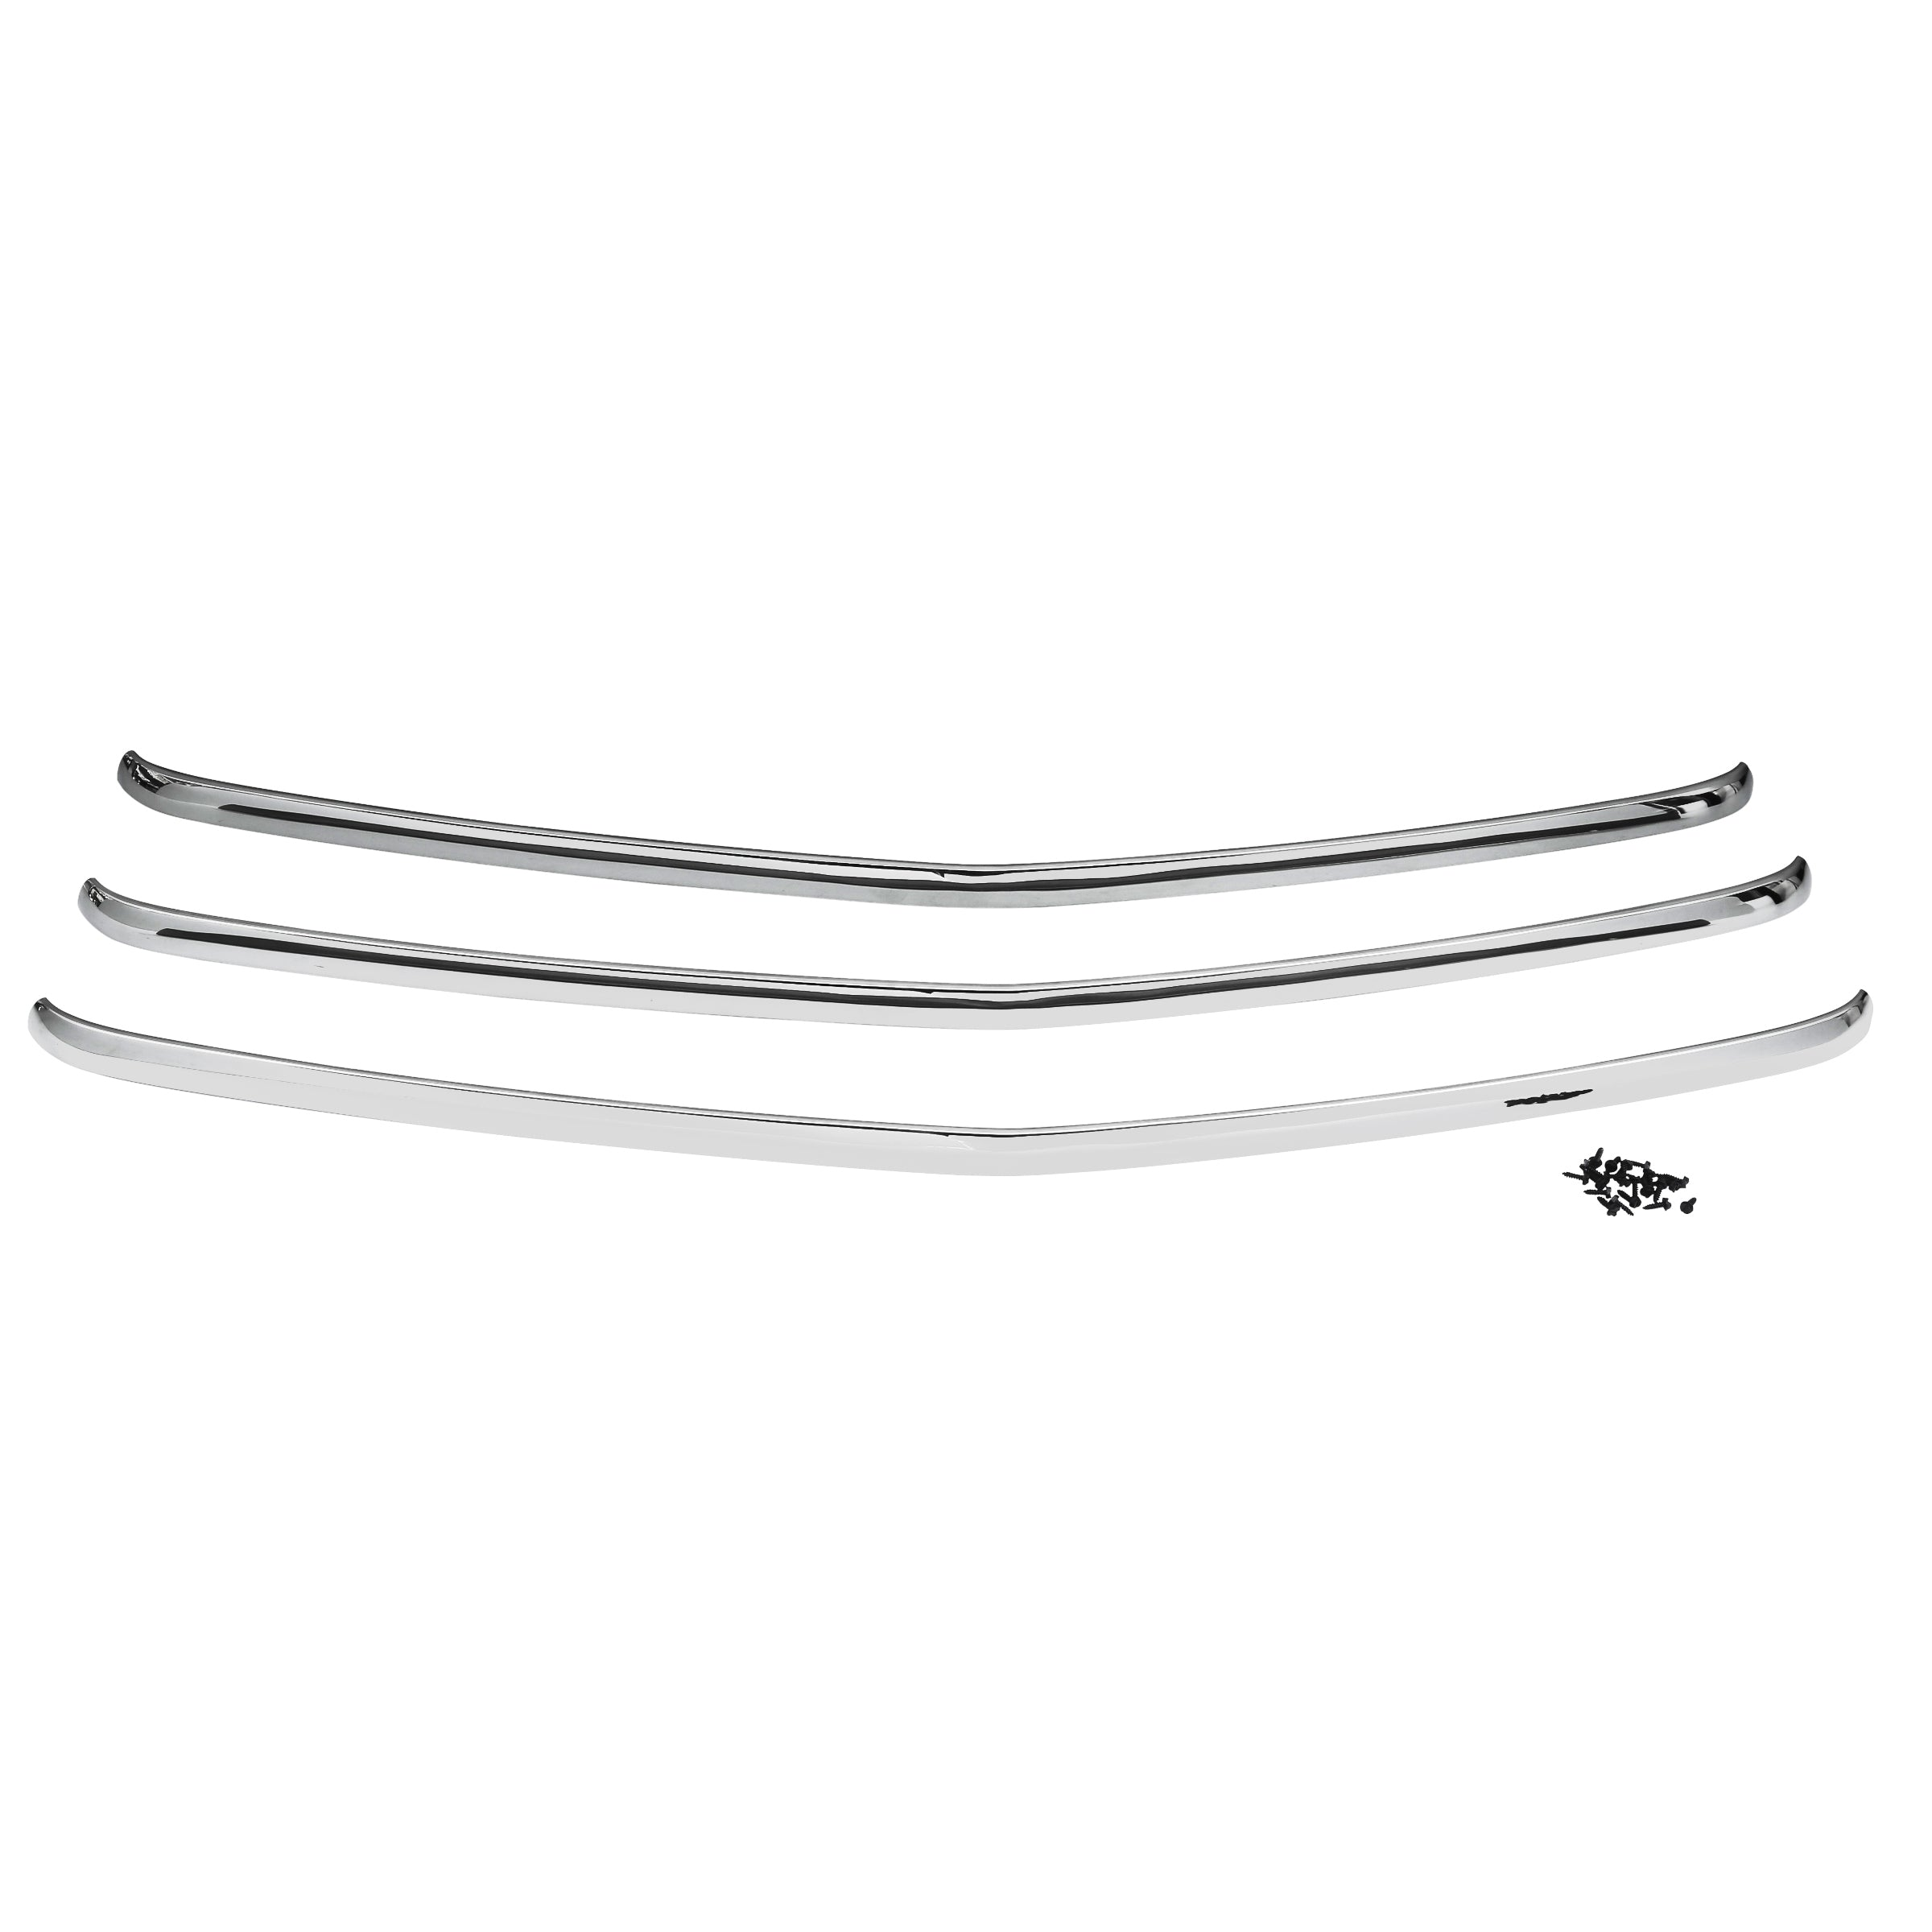 Grille Bar Trim • 1947-48 Ford Passenger